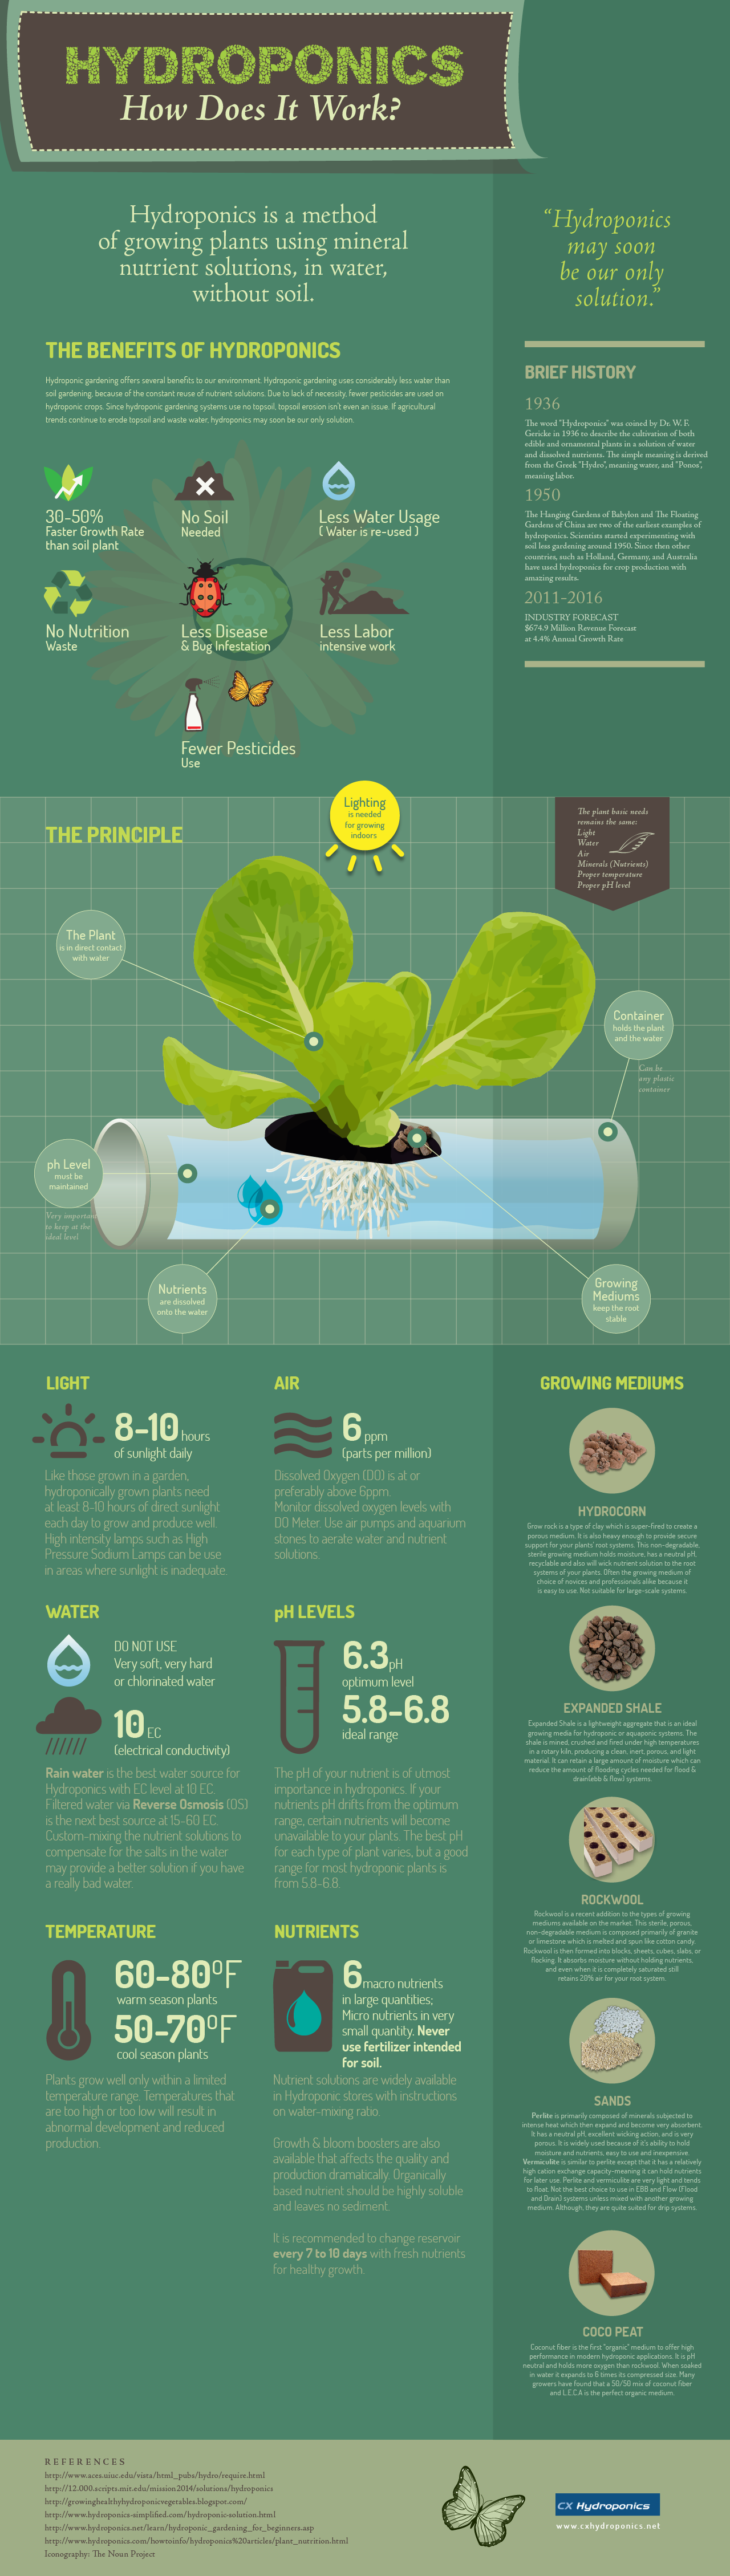 Hydroponics - how does it works?